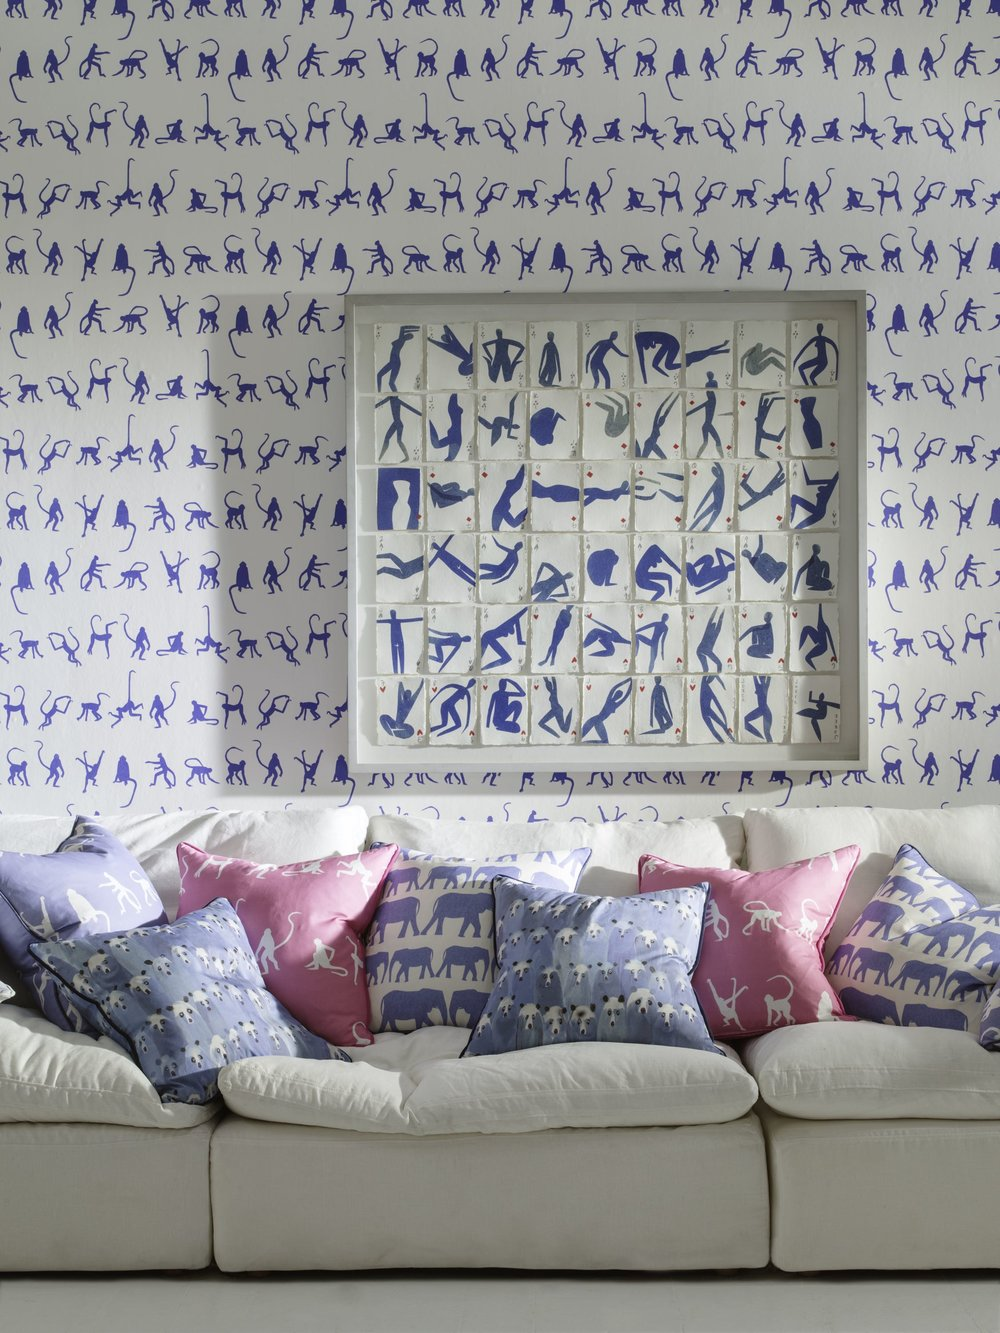 truman_sectional_sofa_white_linen_monkey_puzzle_bluebell_monkey_puzzle_pink_nell_denim_&_theatre_denim_cushions.jpg